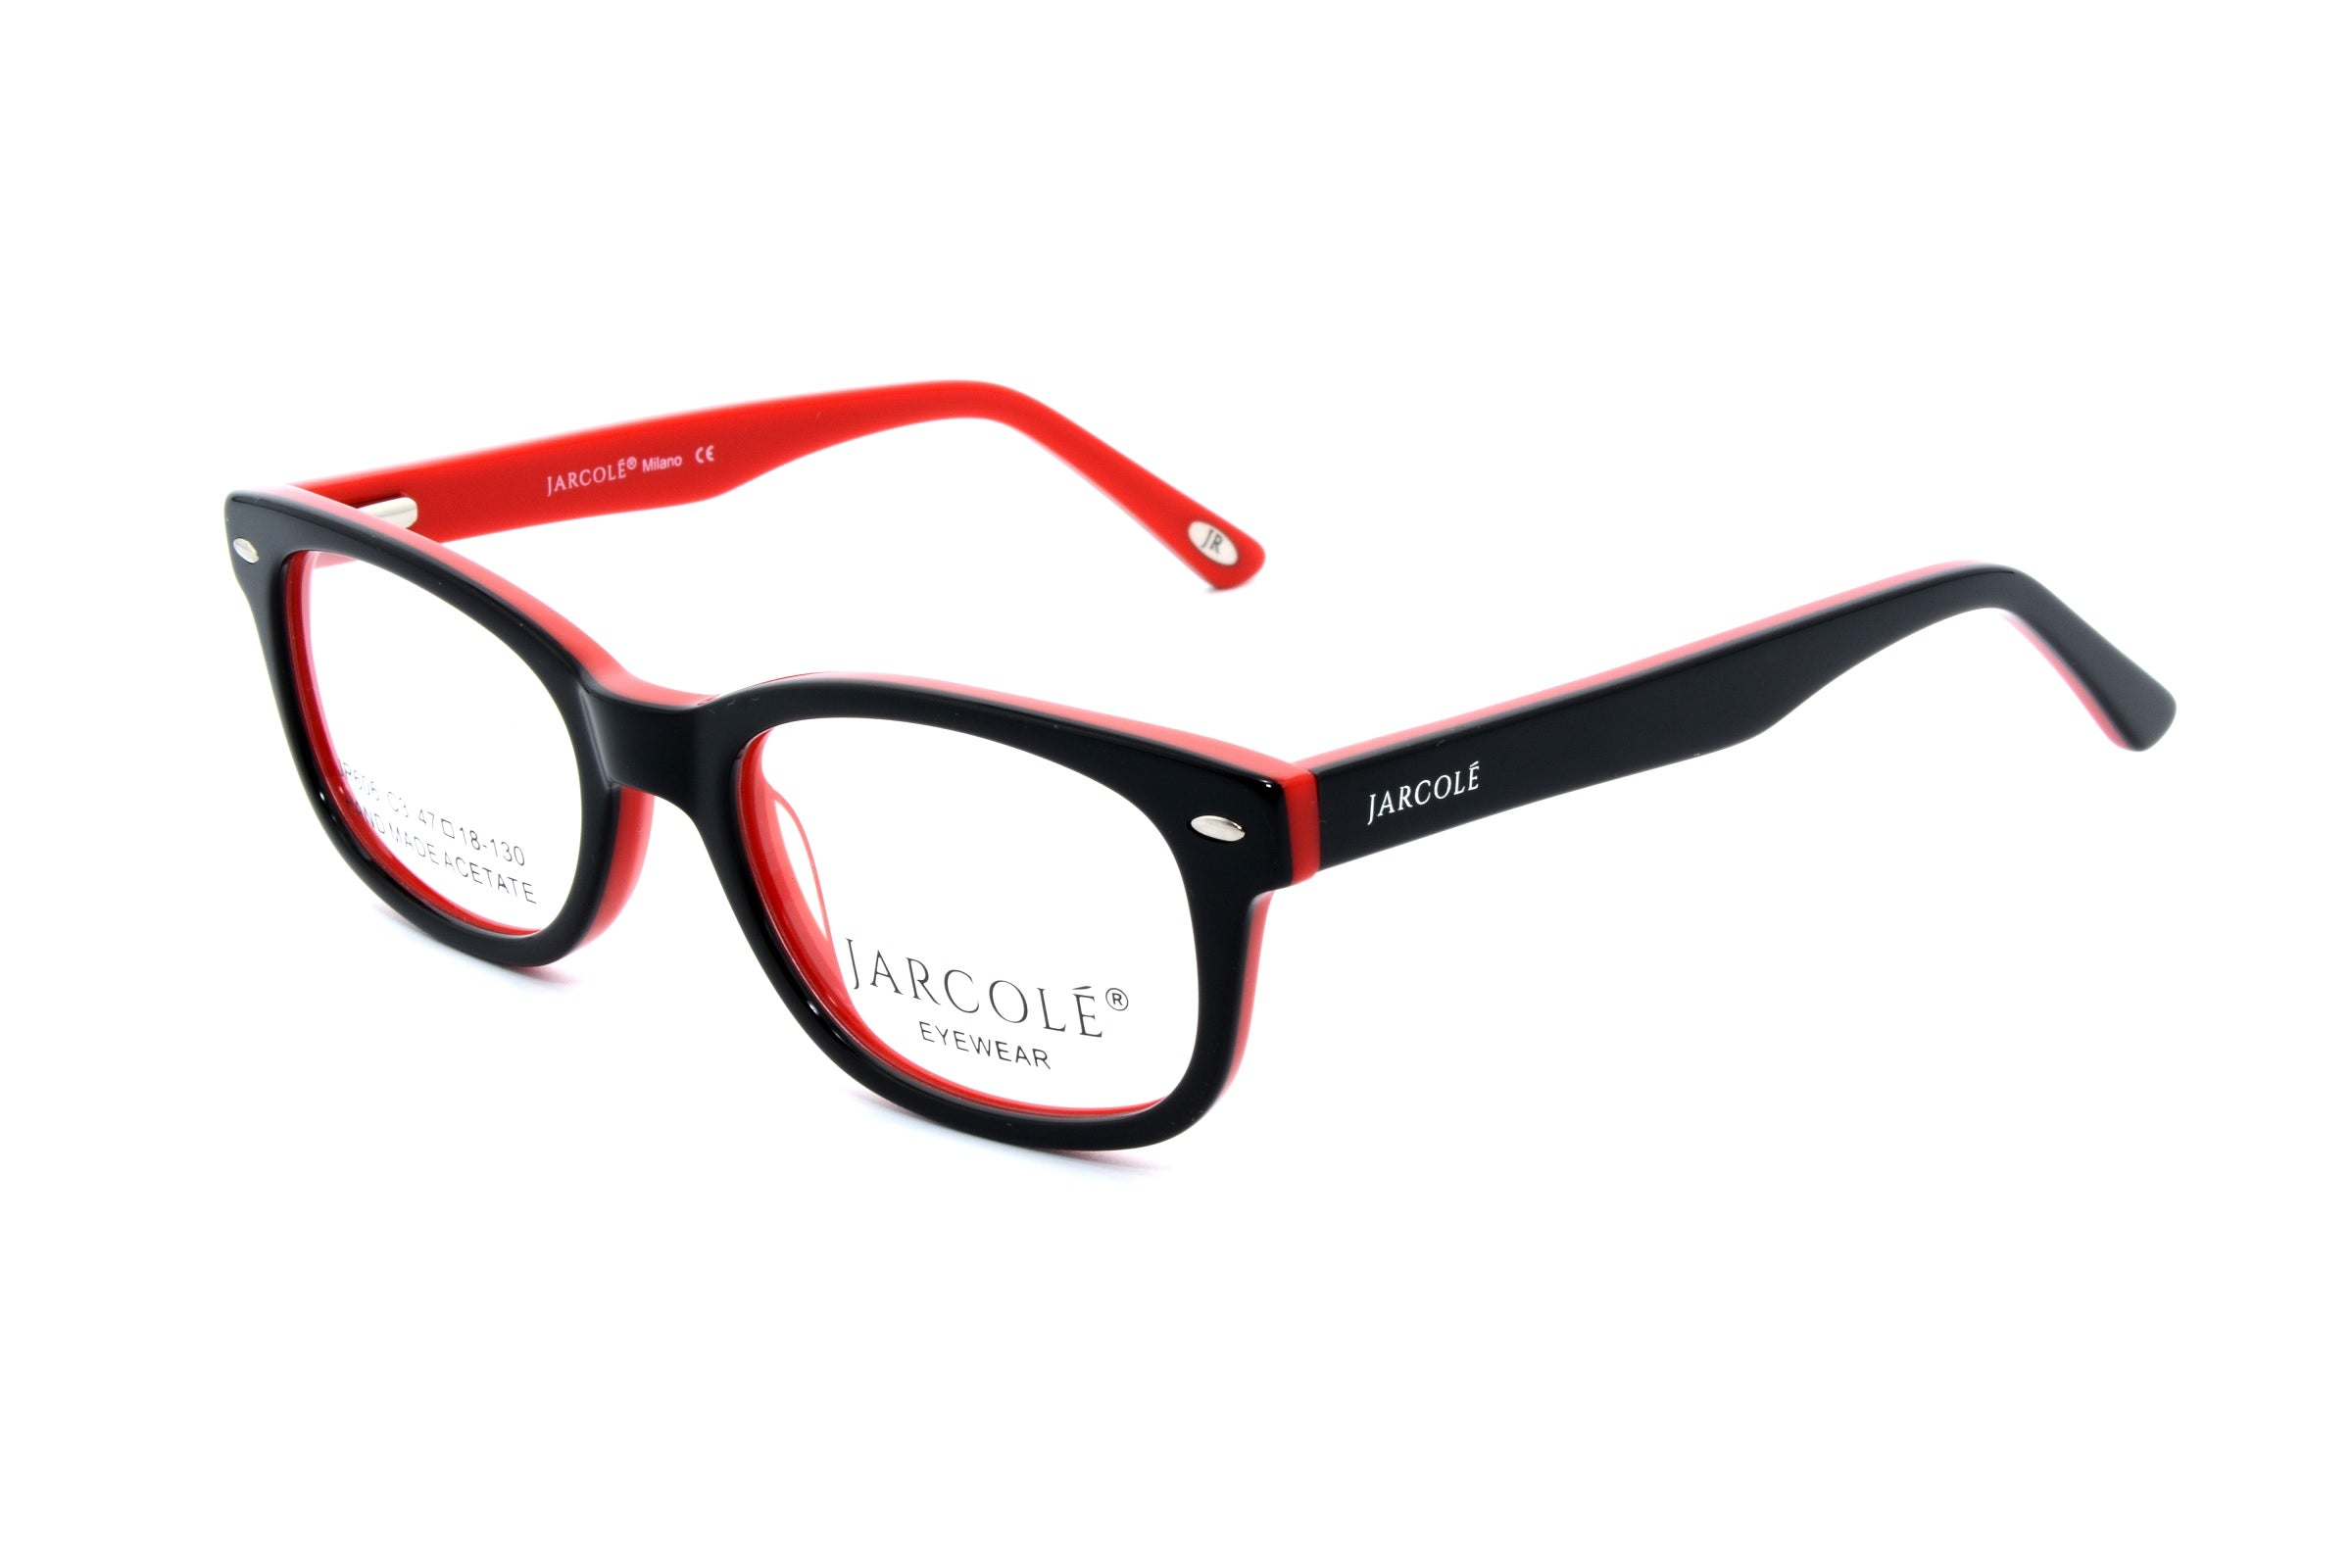 Jarcole eyewear 605, C3 - Optics Trading